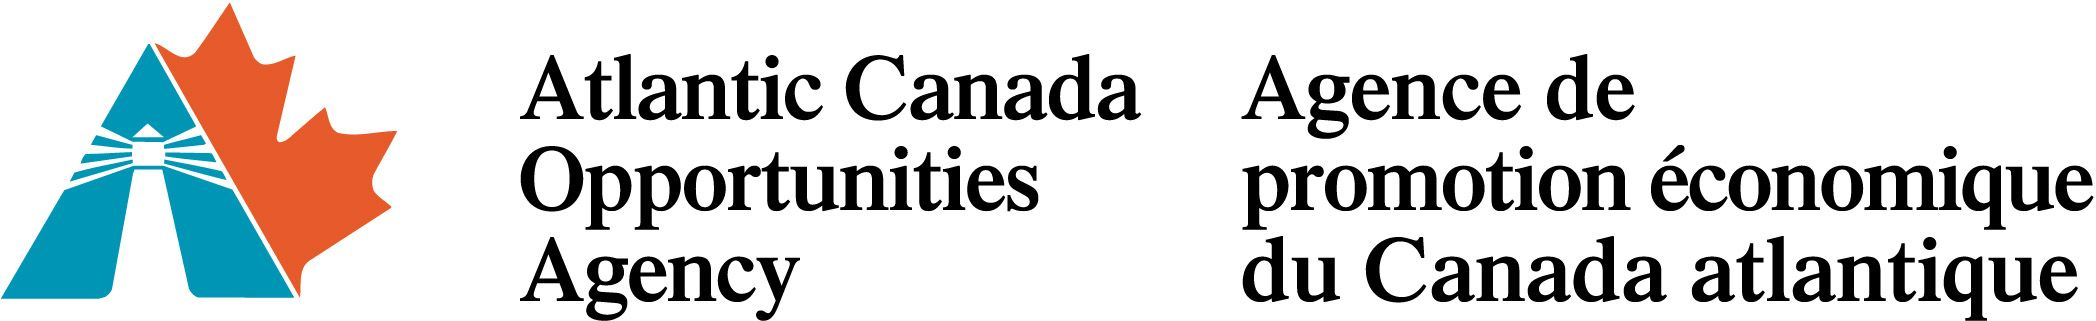 Atlantic Canada Opportunities Agency